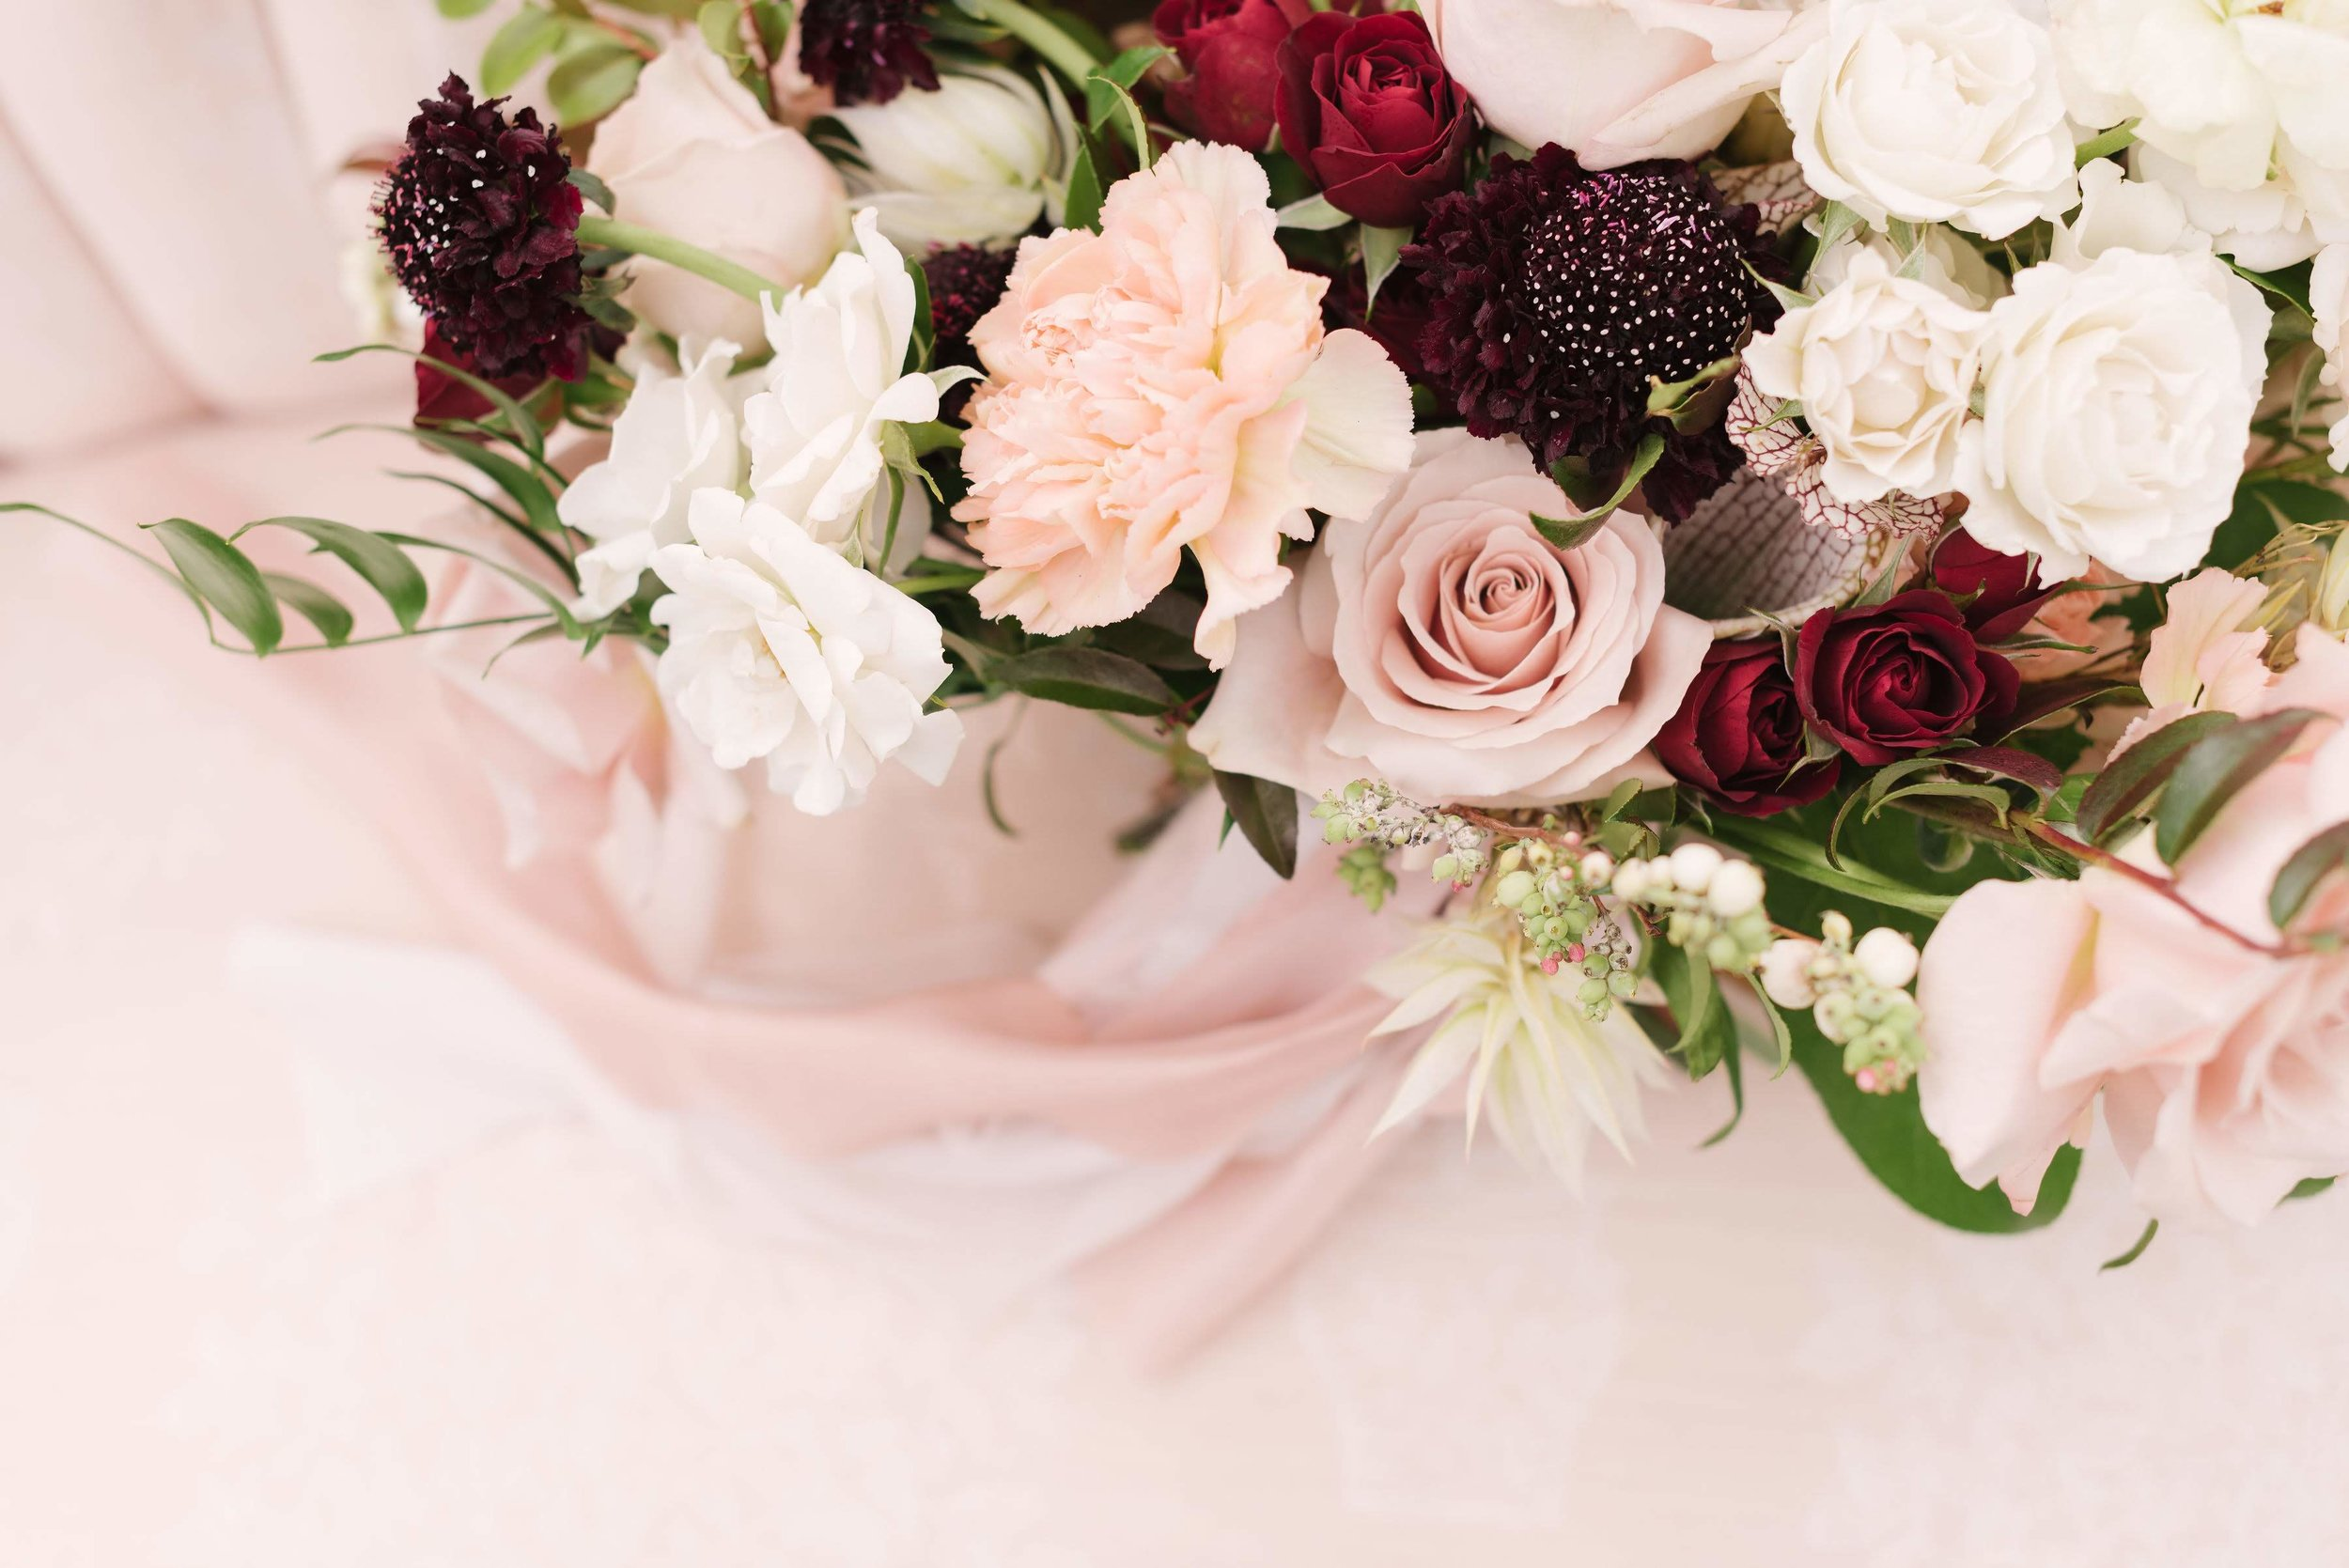 This bouquet deserves a second look!